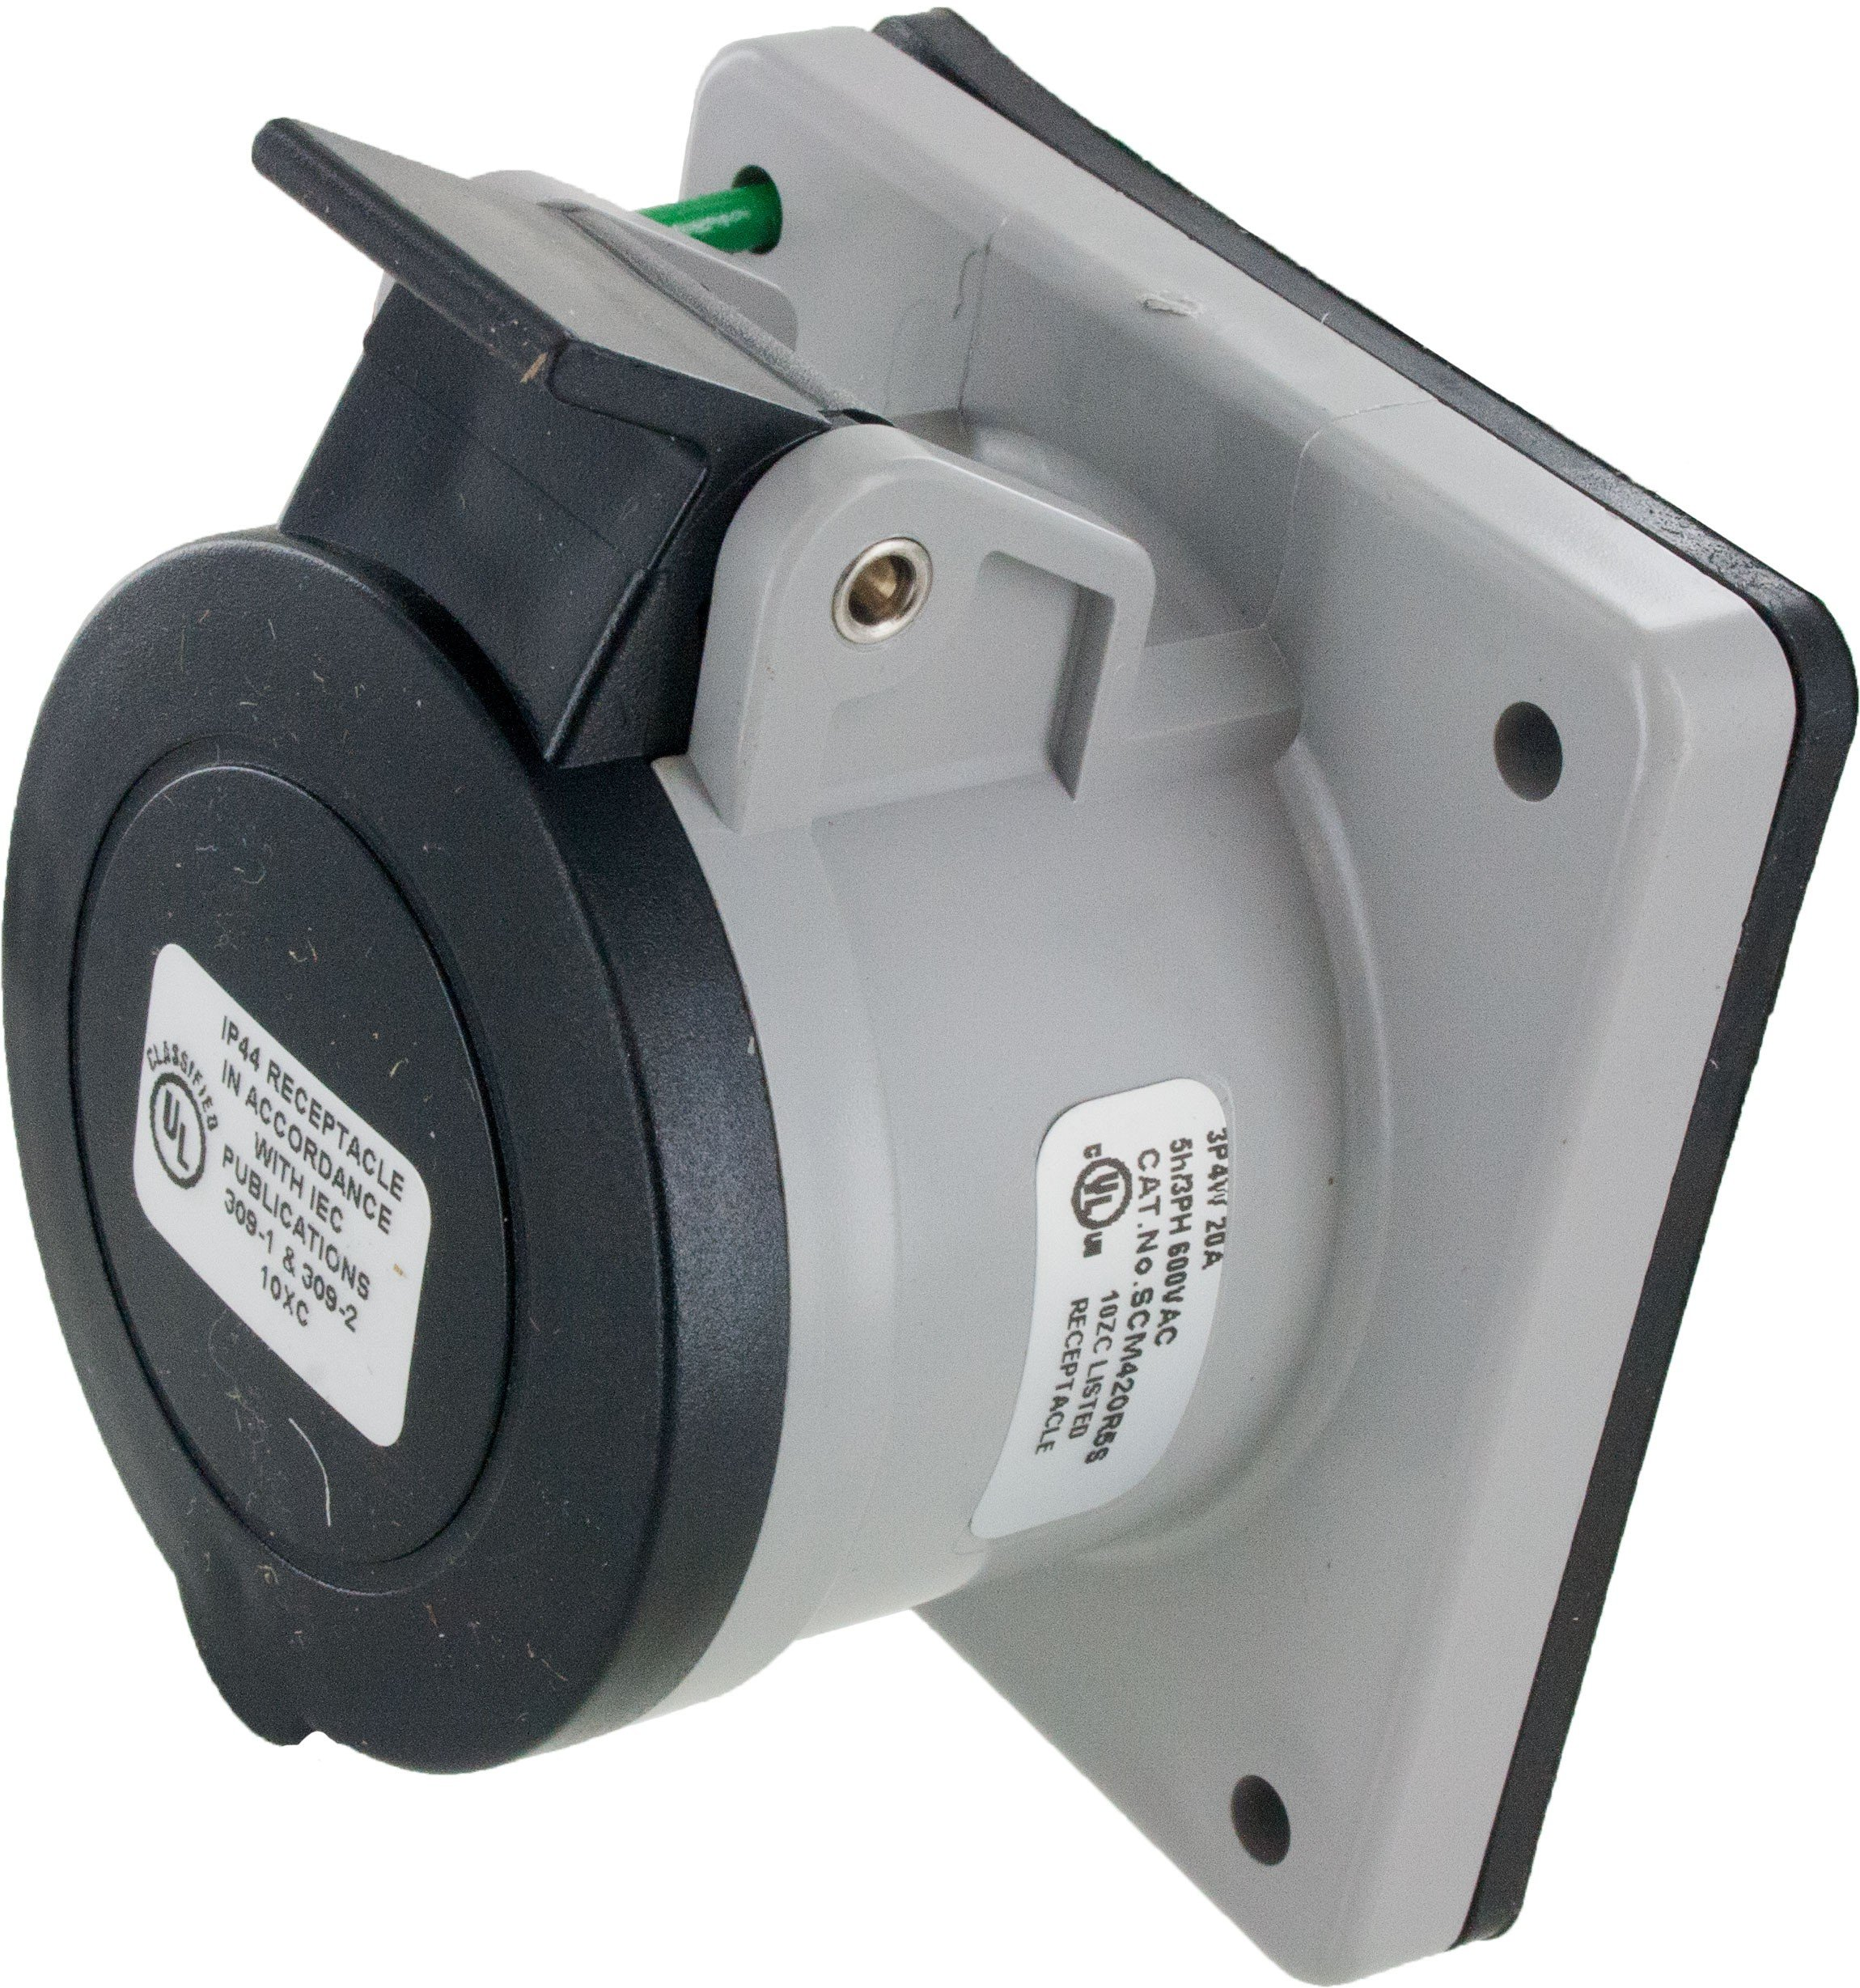 420R5S Pin And Sleeve Receptacle 20 Amp 3 Pole 4 Wire